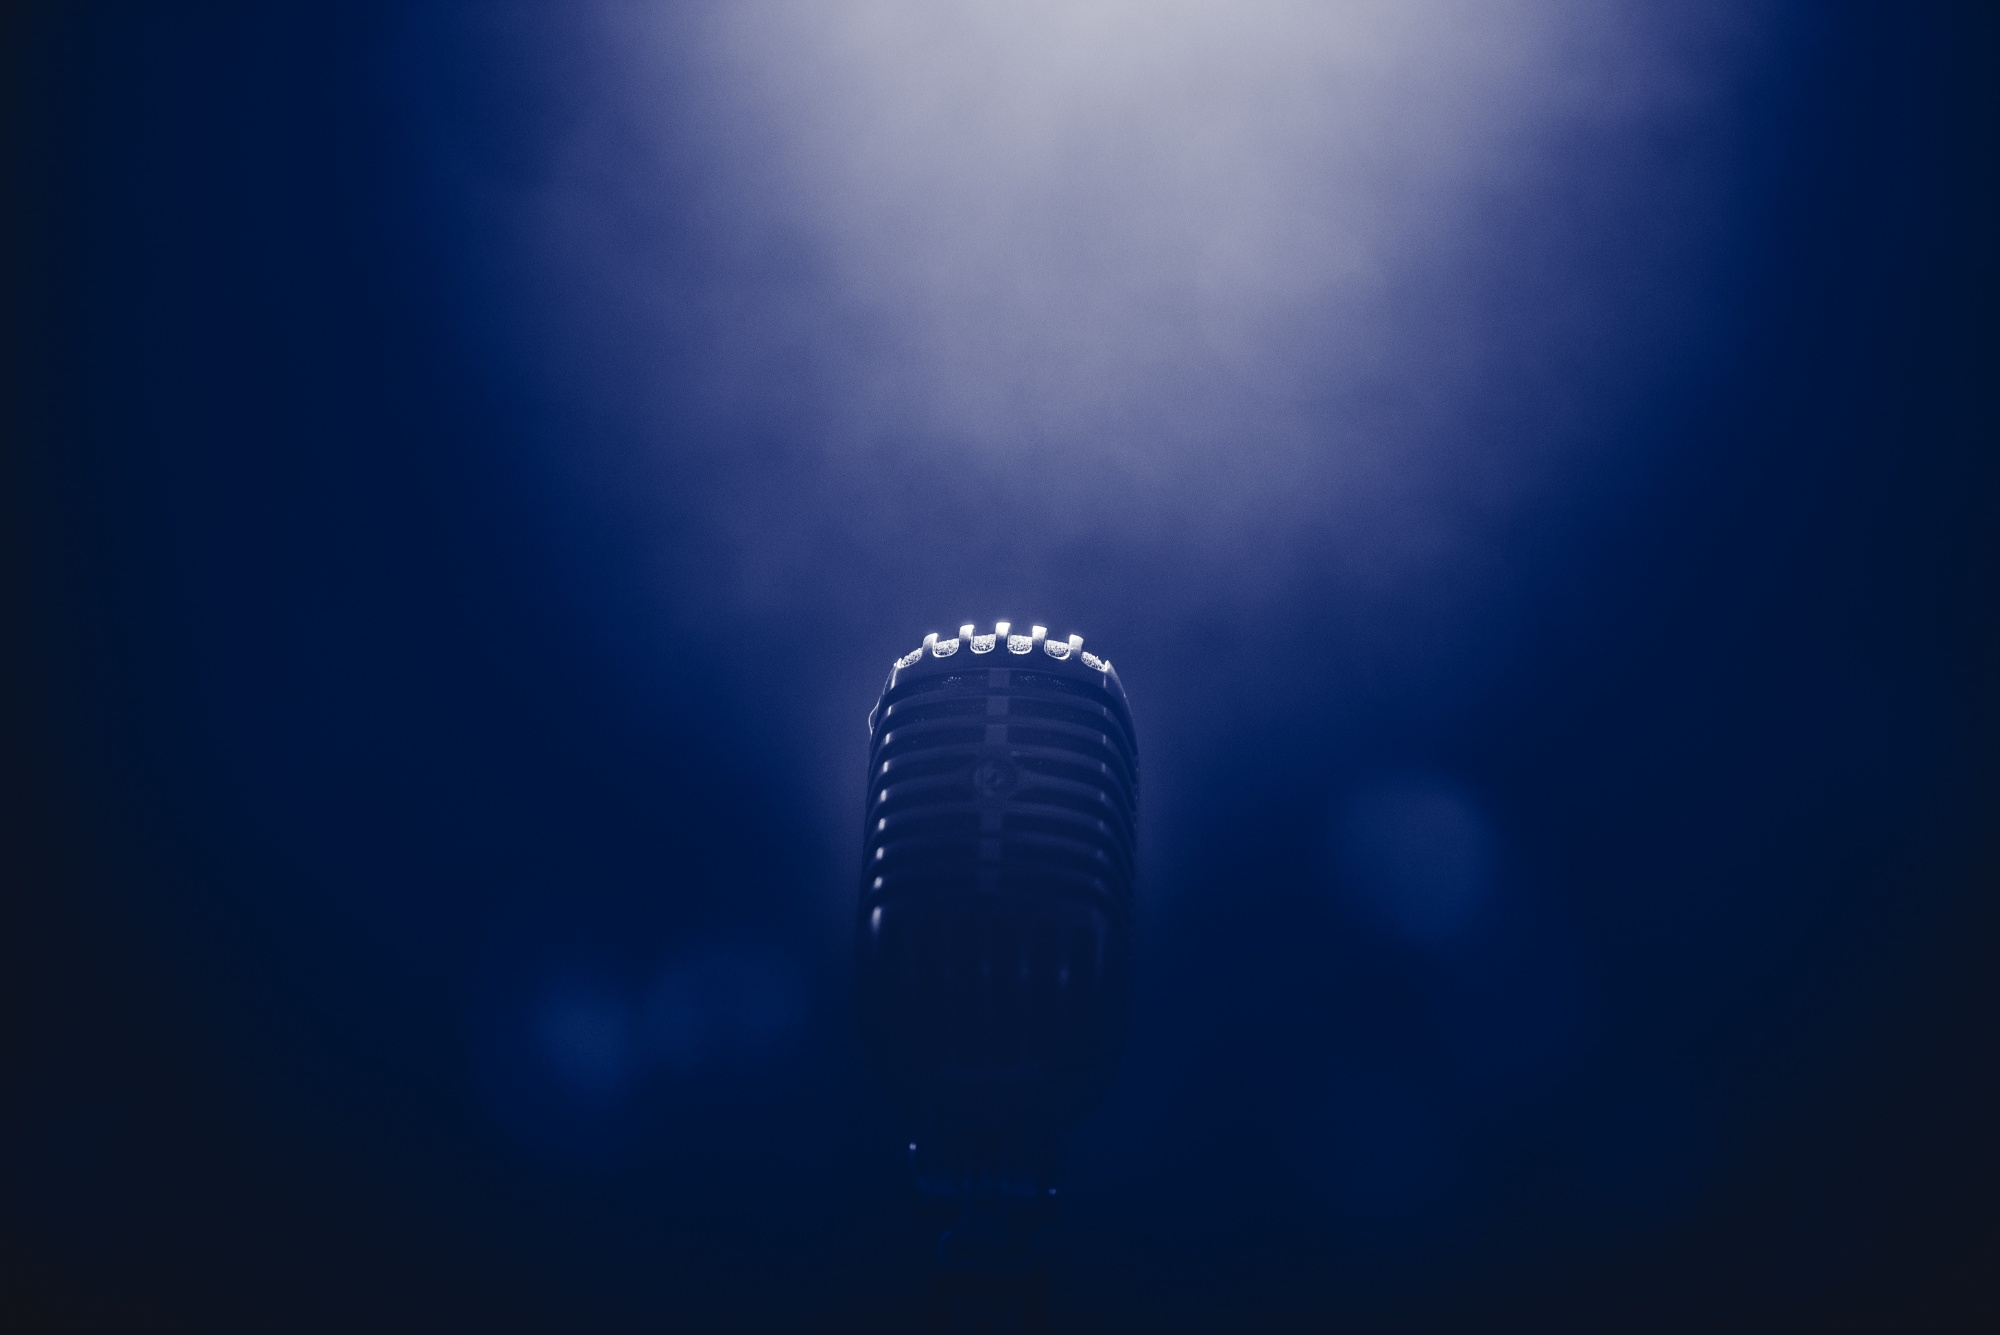 Microphone_Blue Background